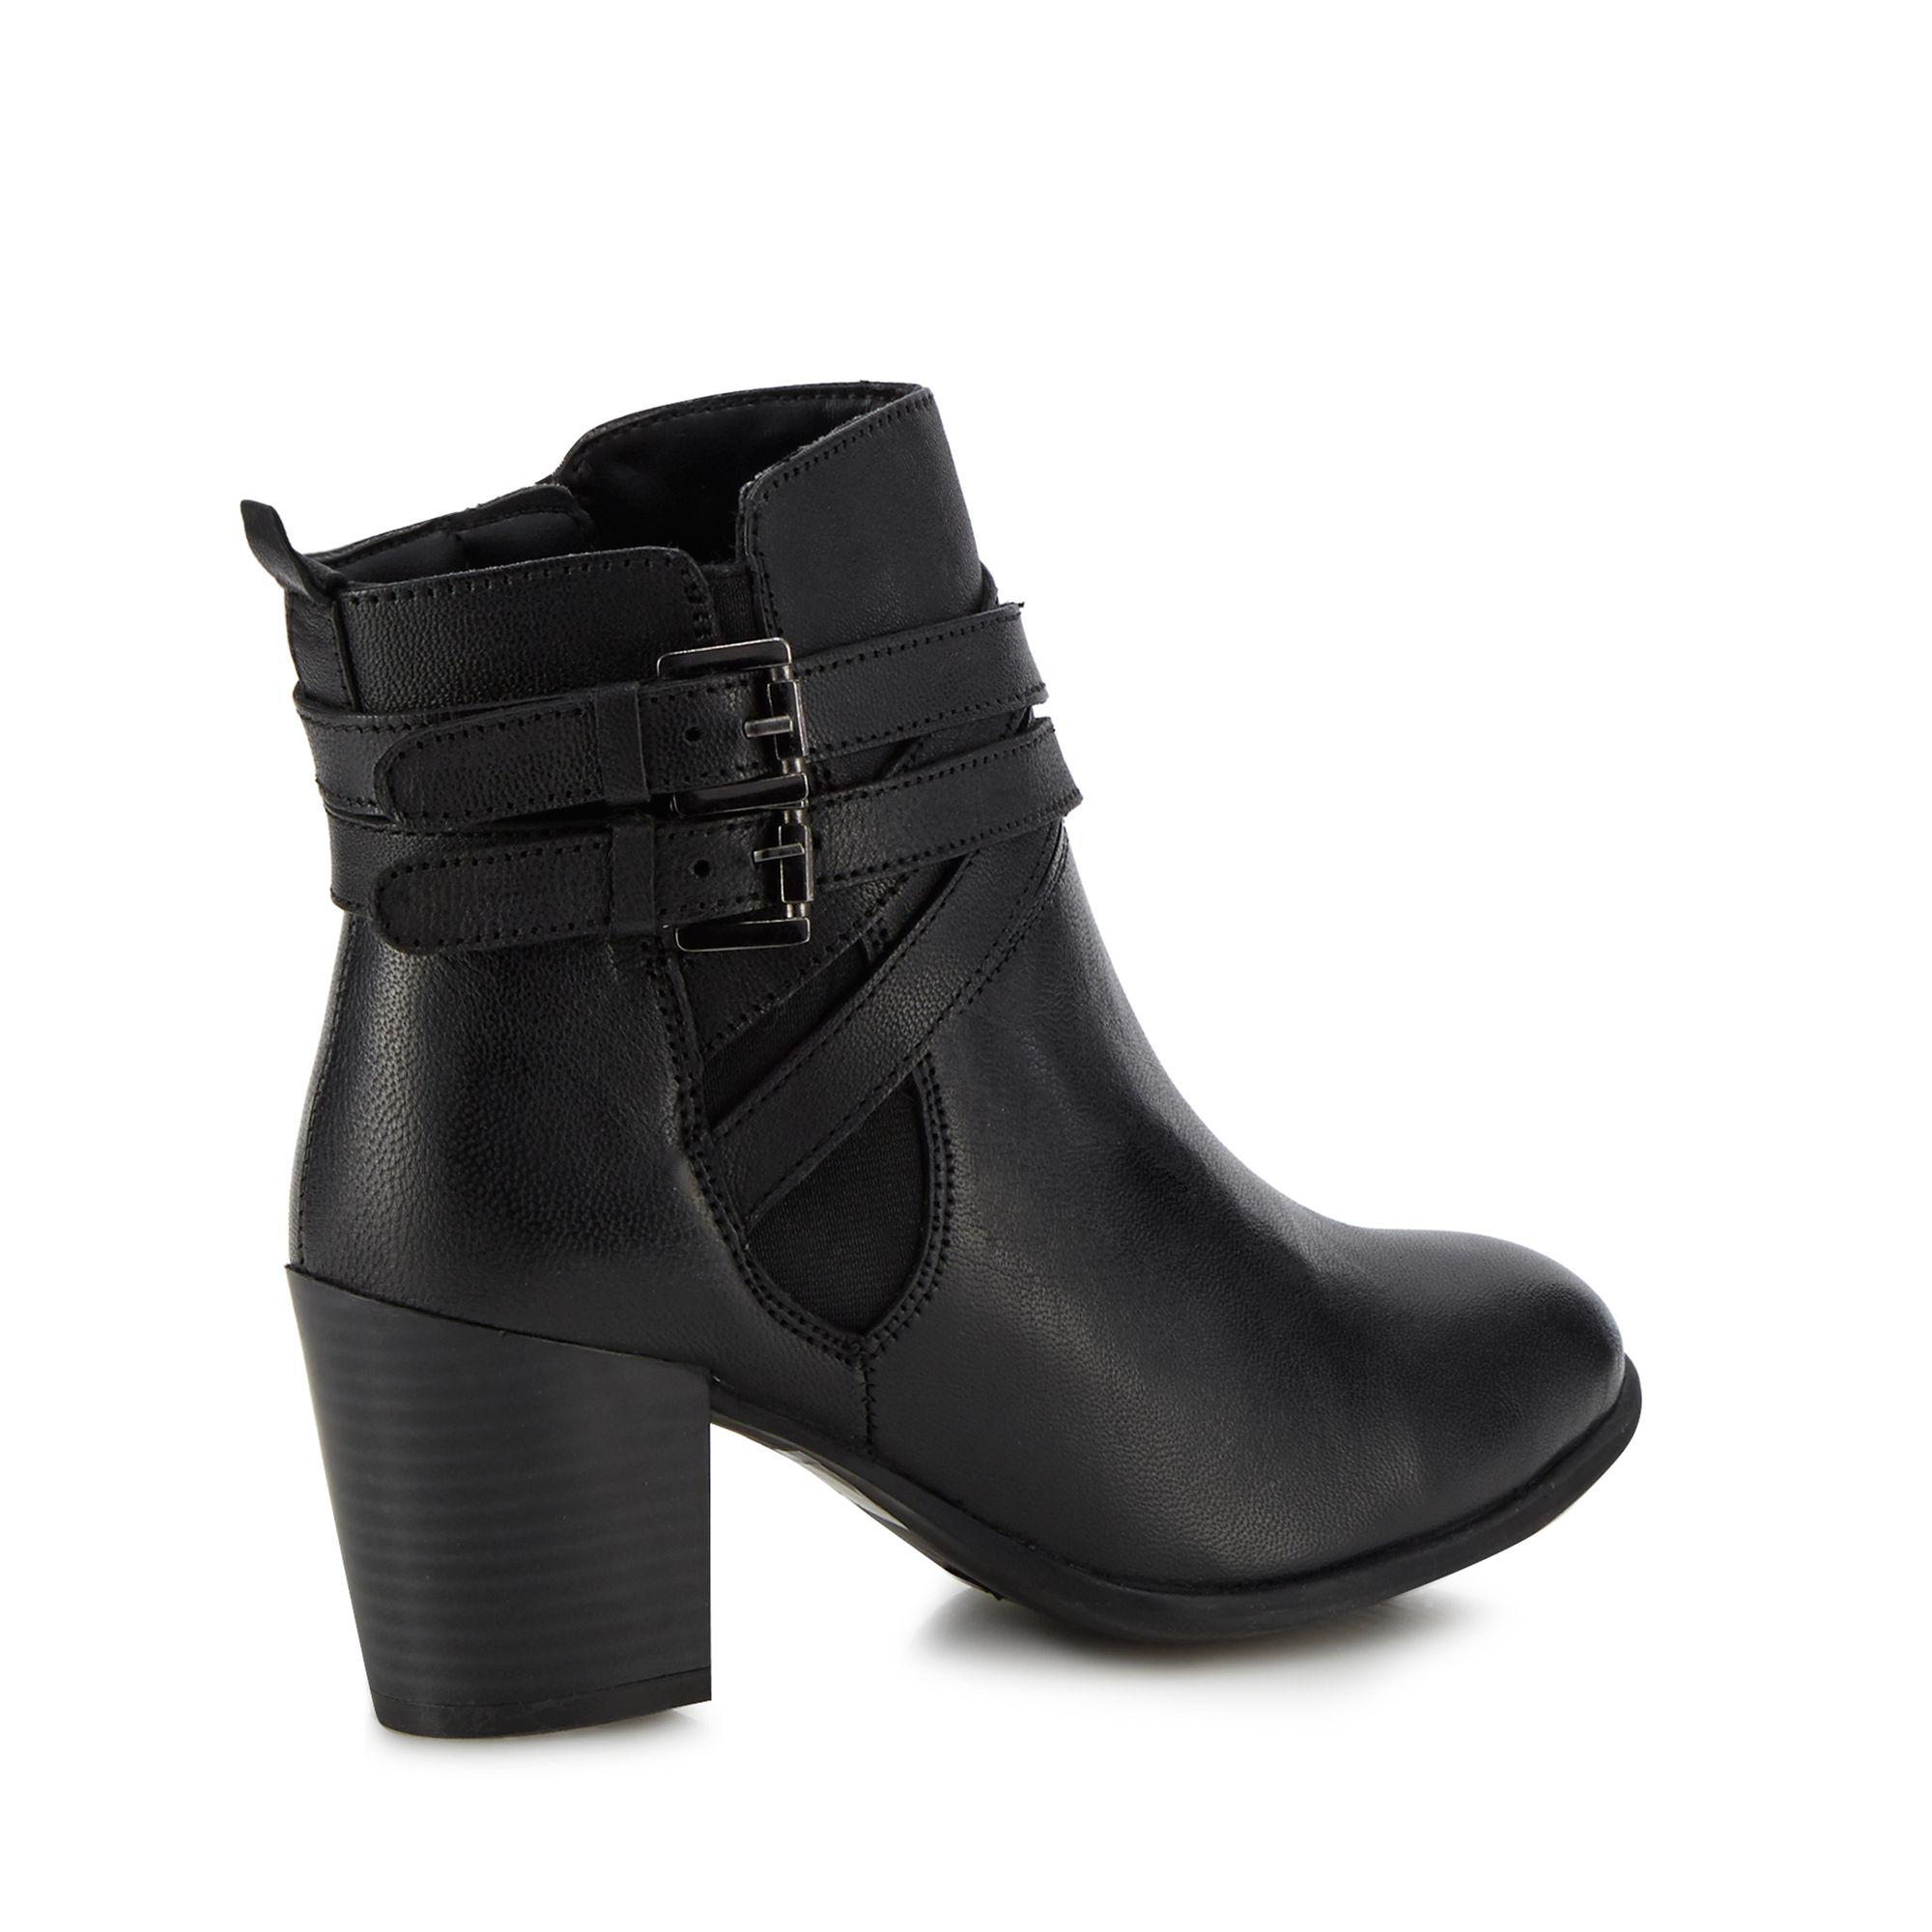 f4ccebedb1da Lotus - Black Leather  Taggerty  Mid Block Heel Ankle Boots - Lyst. View  fullscreen